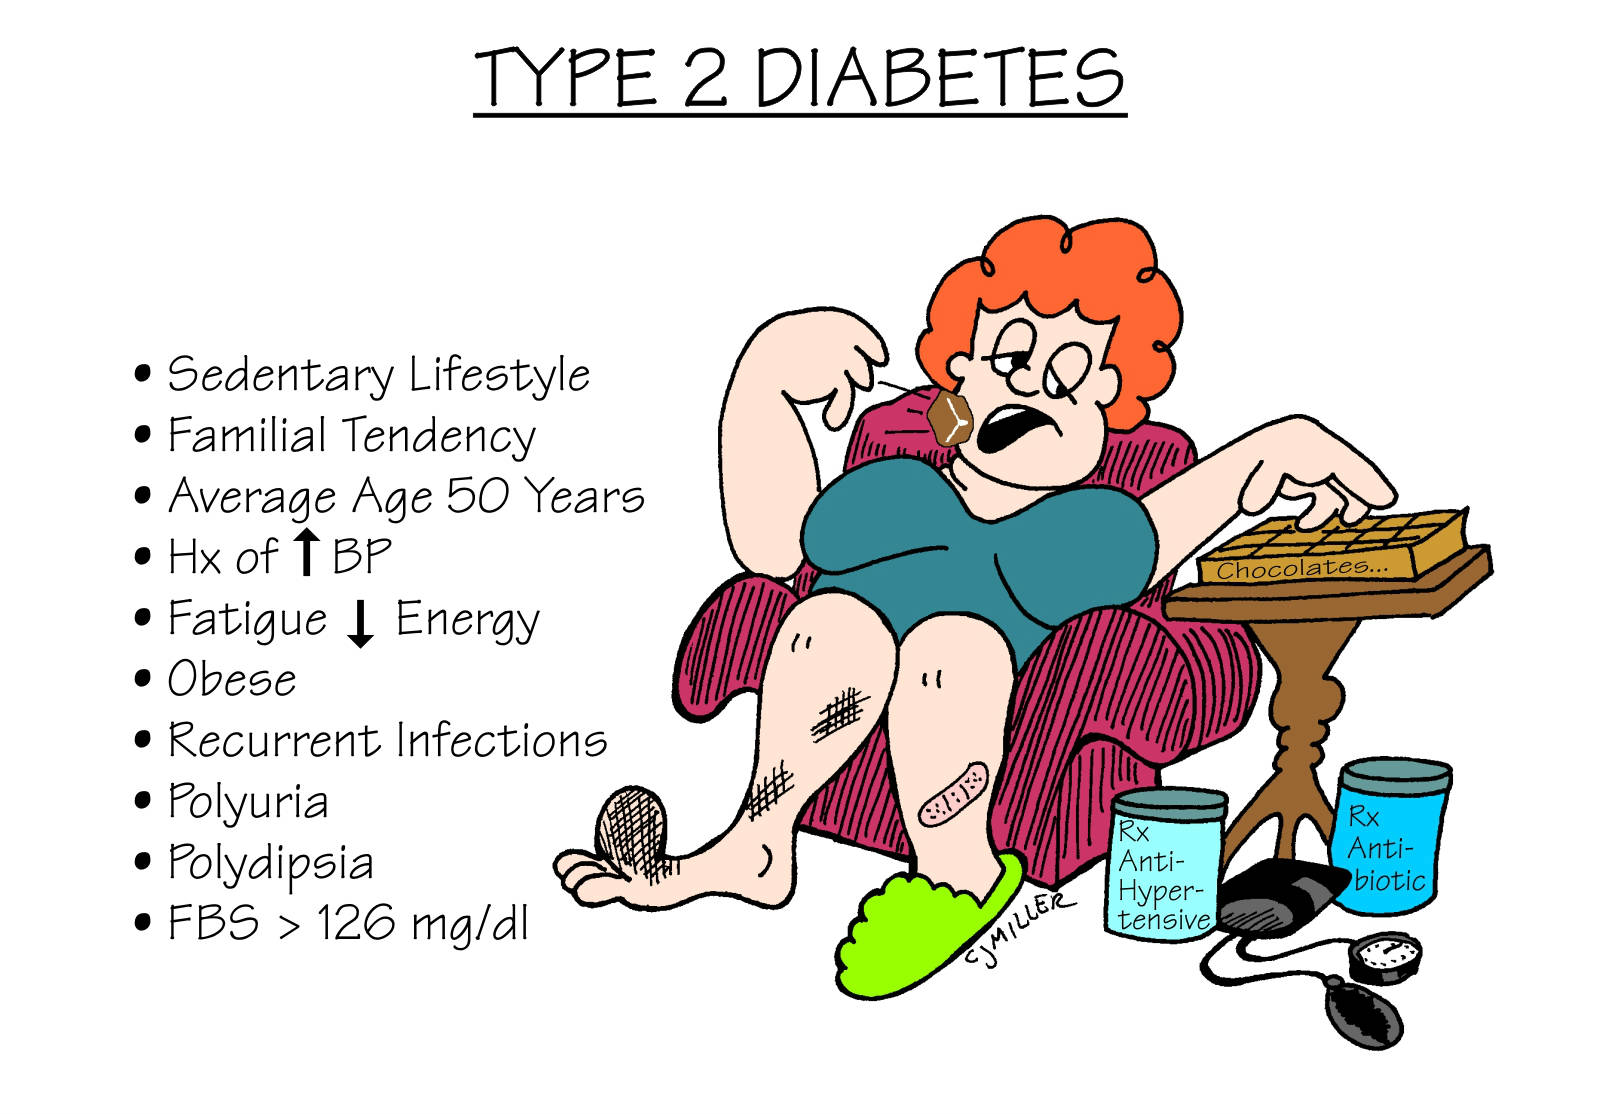 Diabetes type 2 symptoms and signs studie